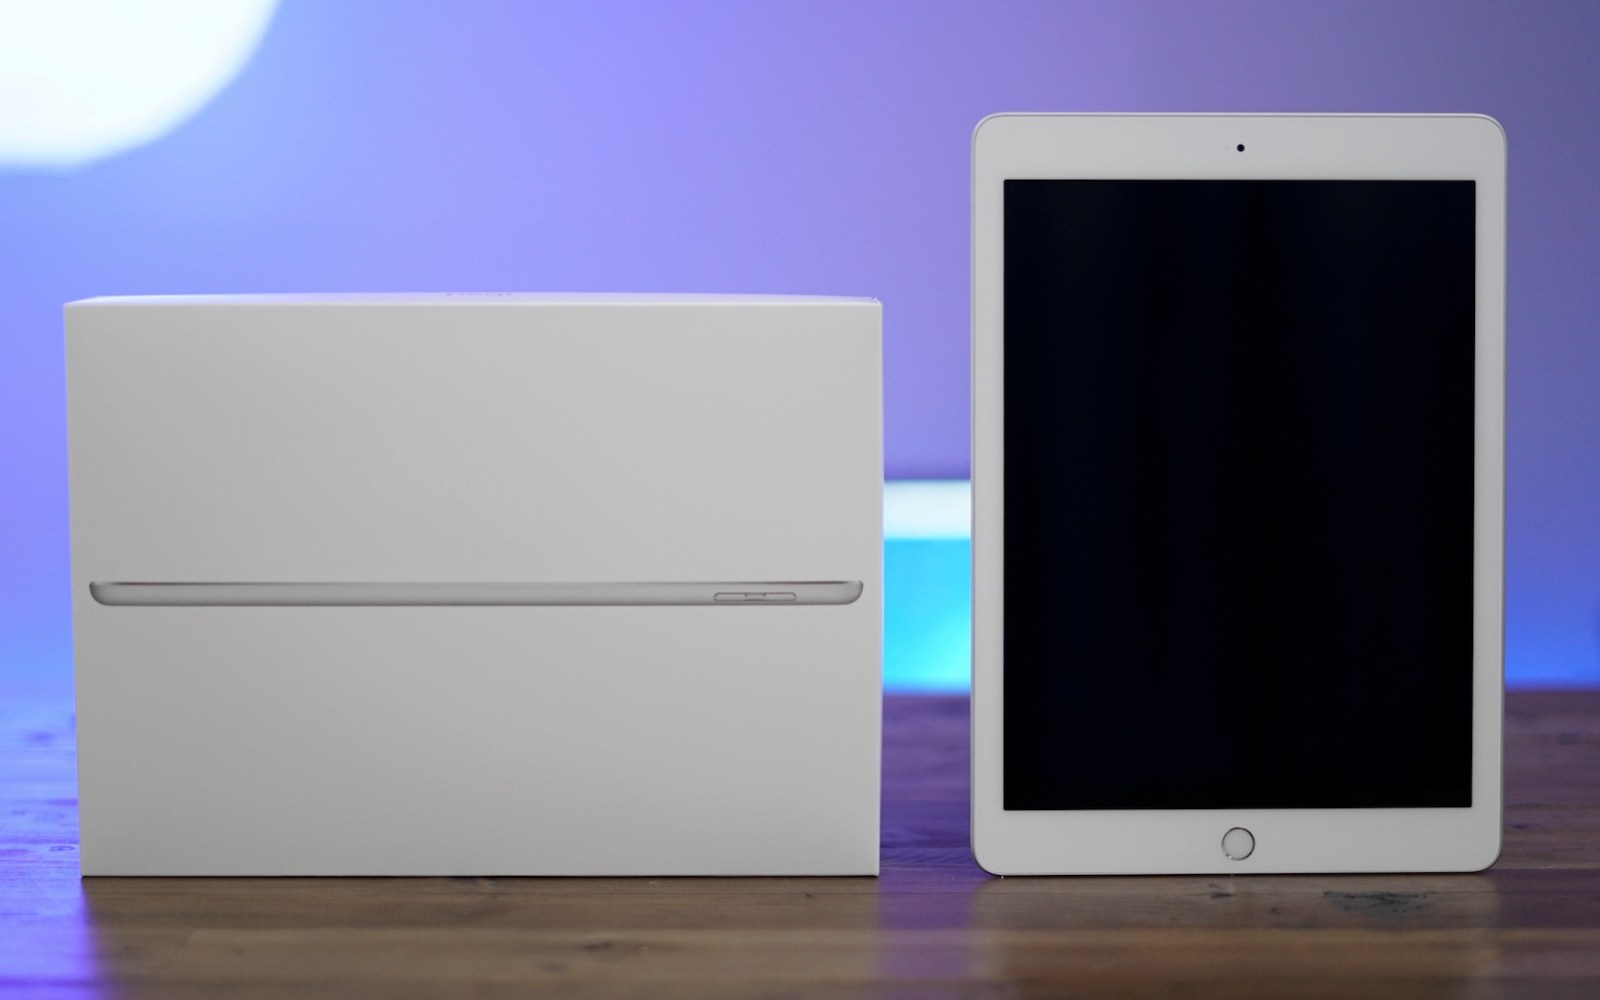 Review: Apple's $329 iPad is not without compromise, but a solid buy for upgraders and new users [Video]